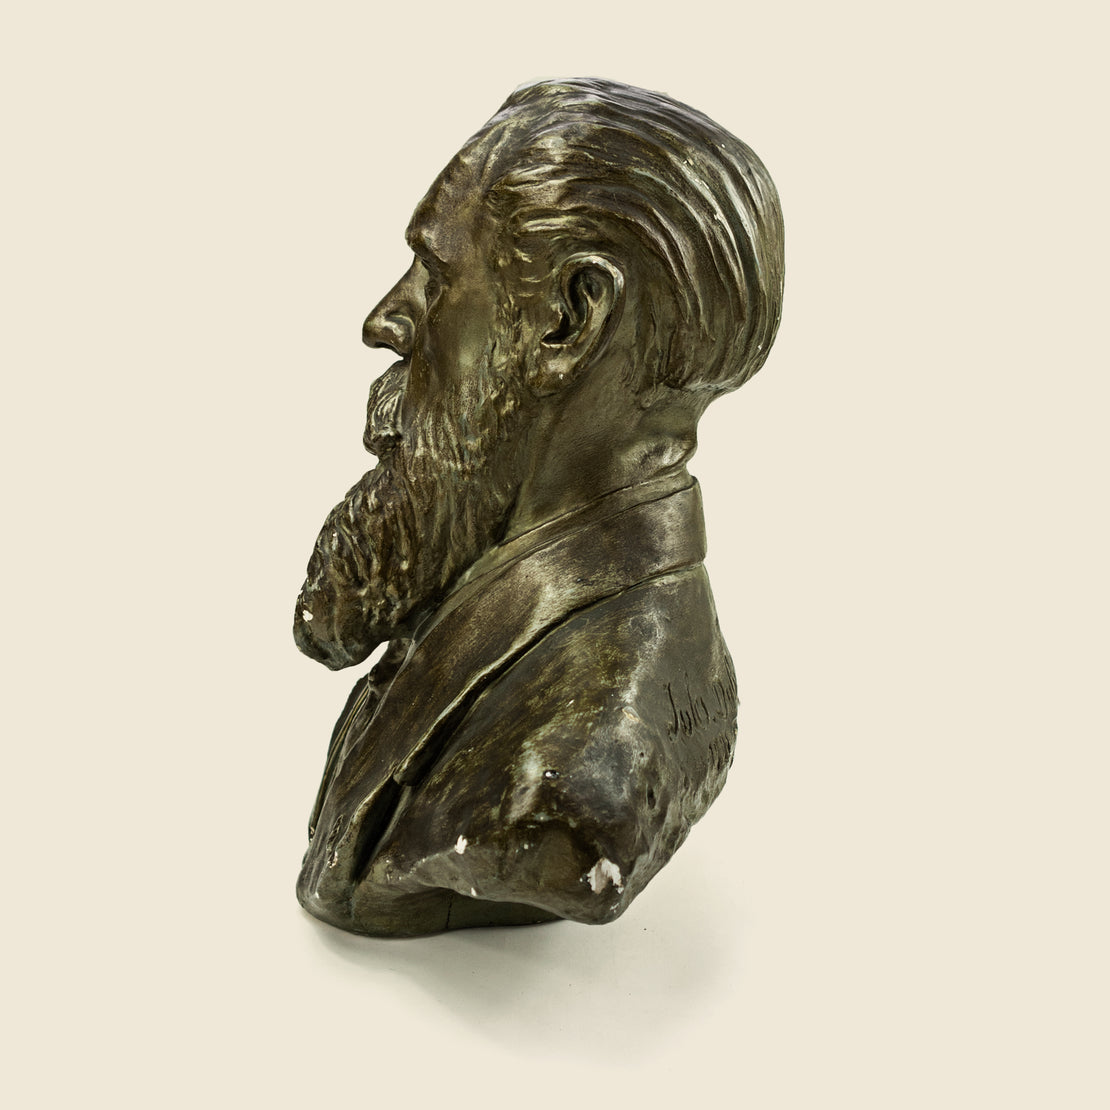 1920s Cast Plaster Bust - Suited Male